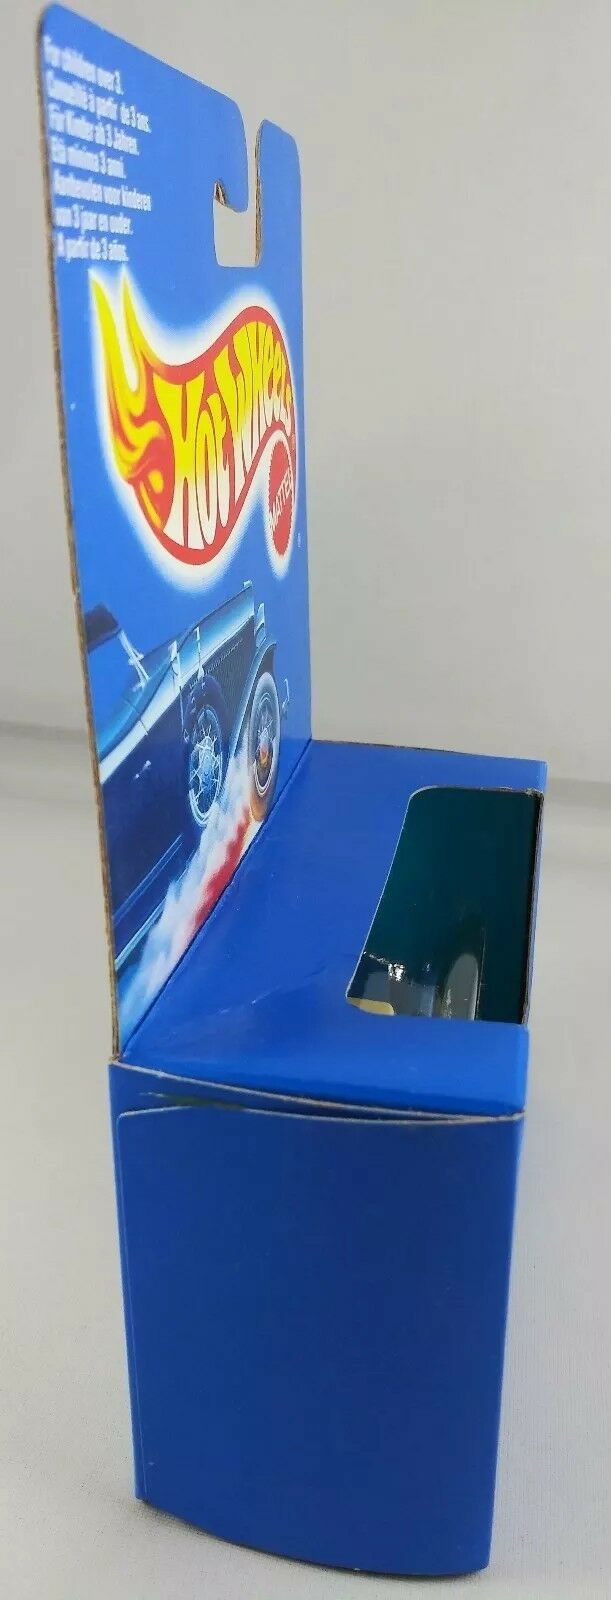 1990 HOT HOT HOT WHEELS ROLLS-ROYCE WHITEWALLS blueE CARD  blueE BOX e476cf